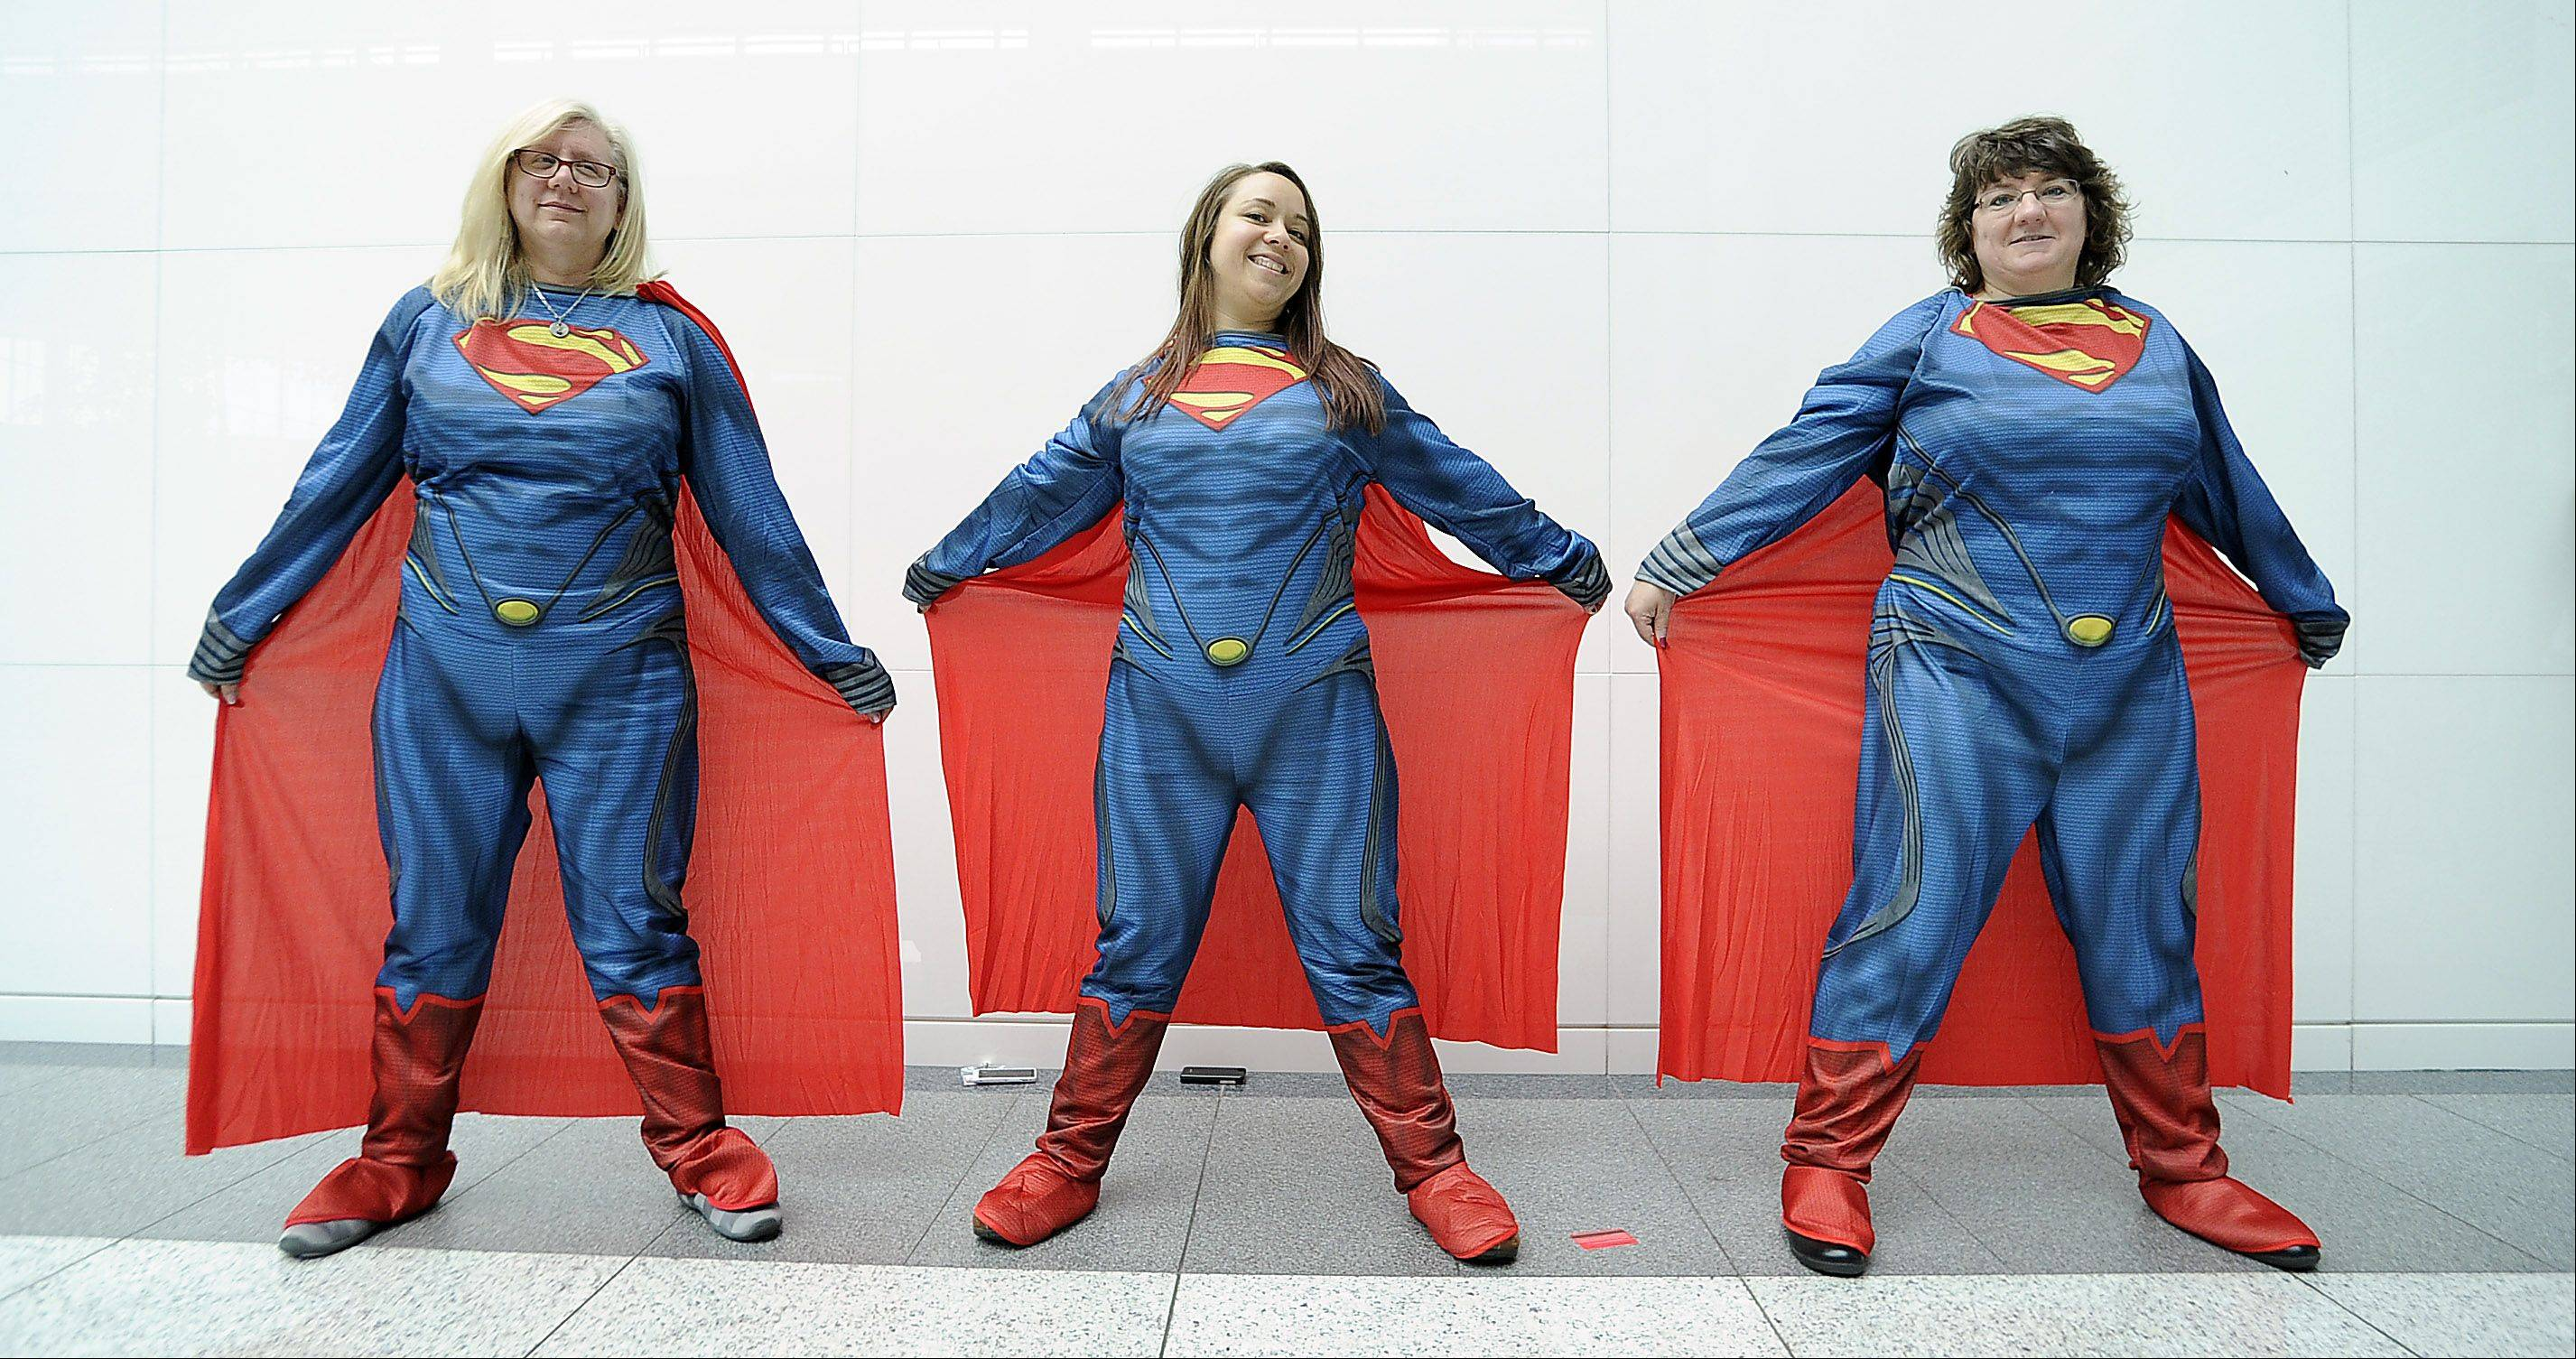 Jan Somers of Lake Zurich, Jamie Becker of Wheaton and Kim Lachman of Lake in the Hills strike a pose as Superman.